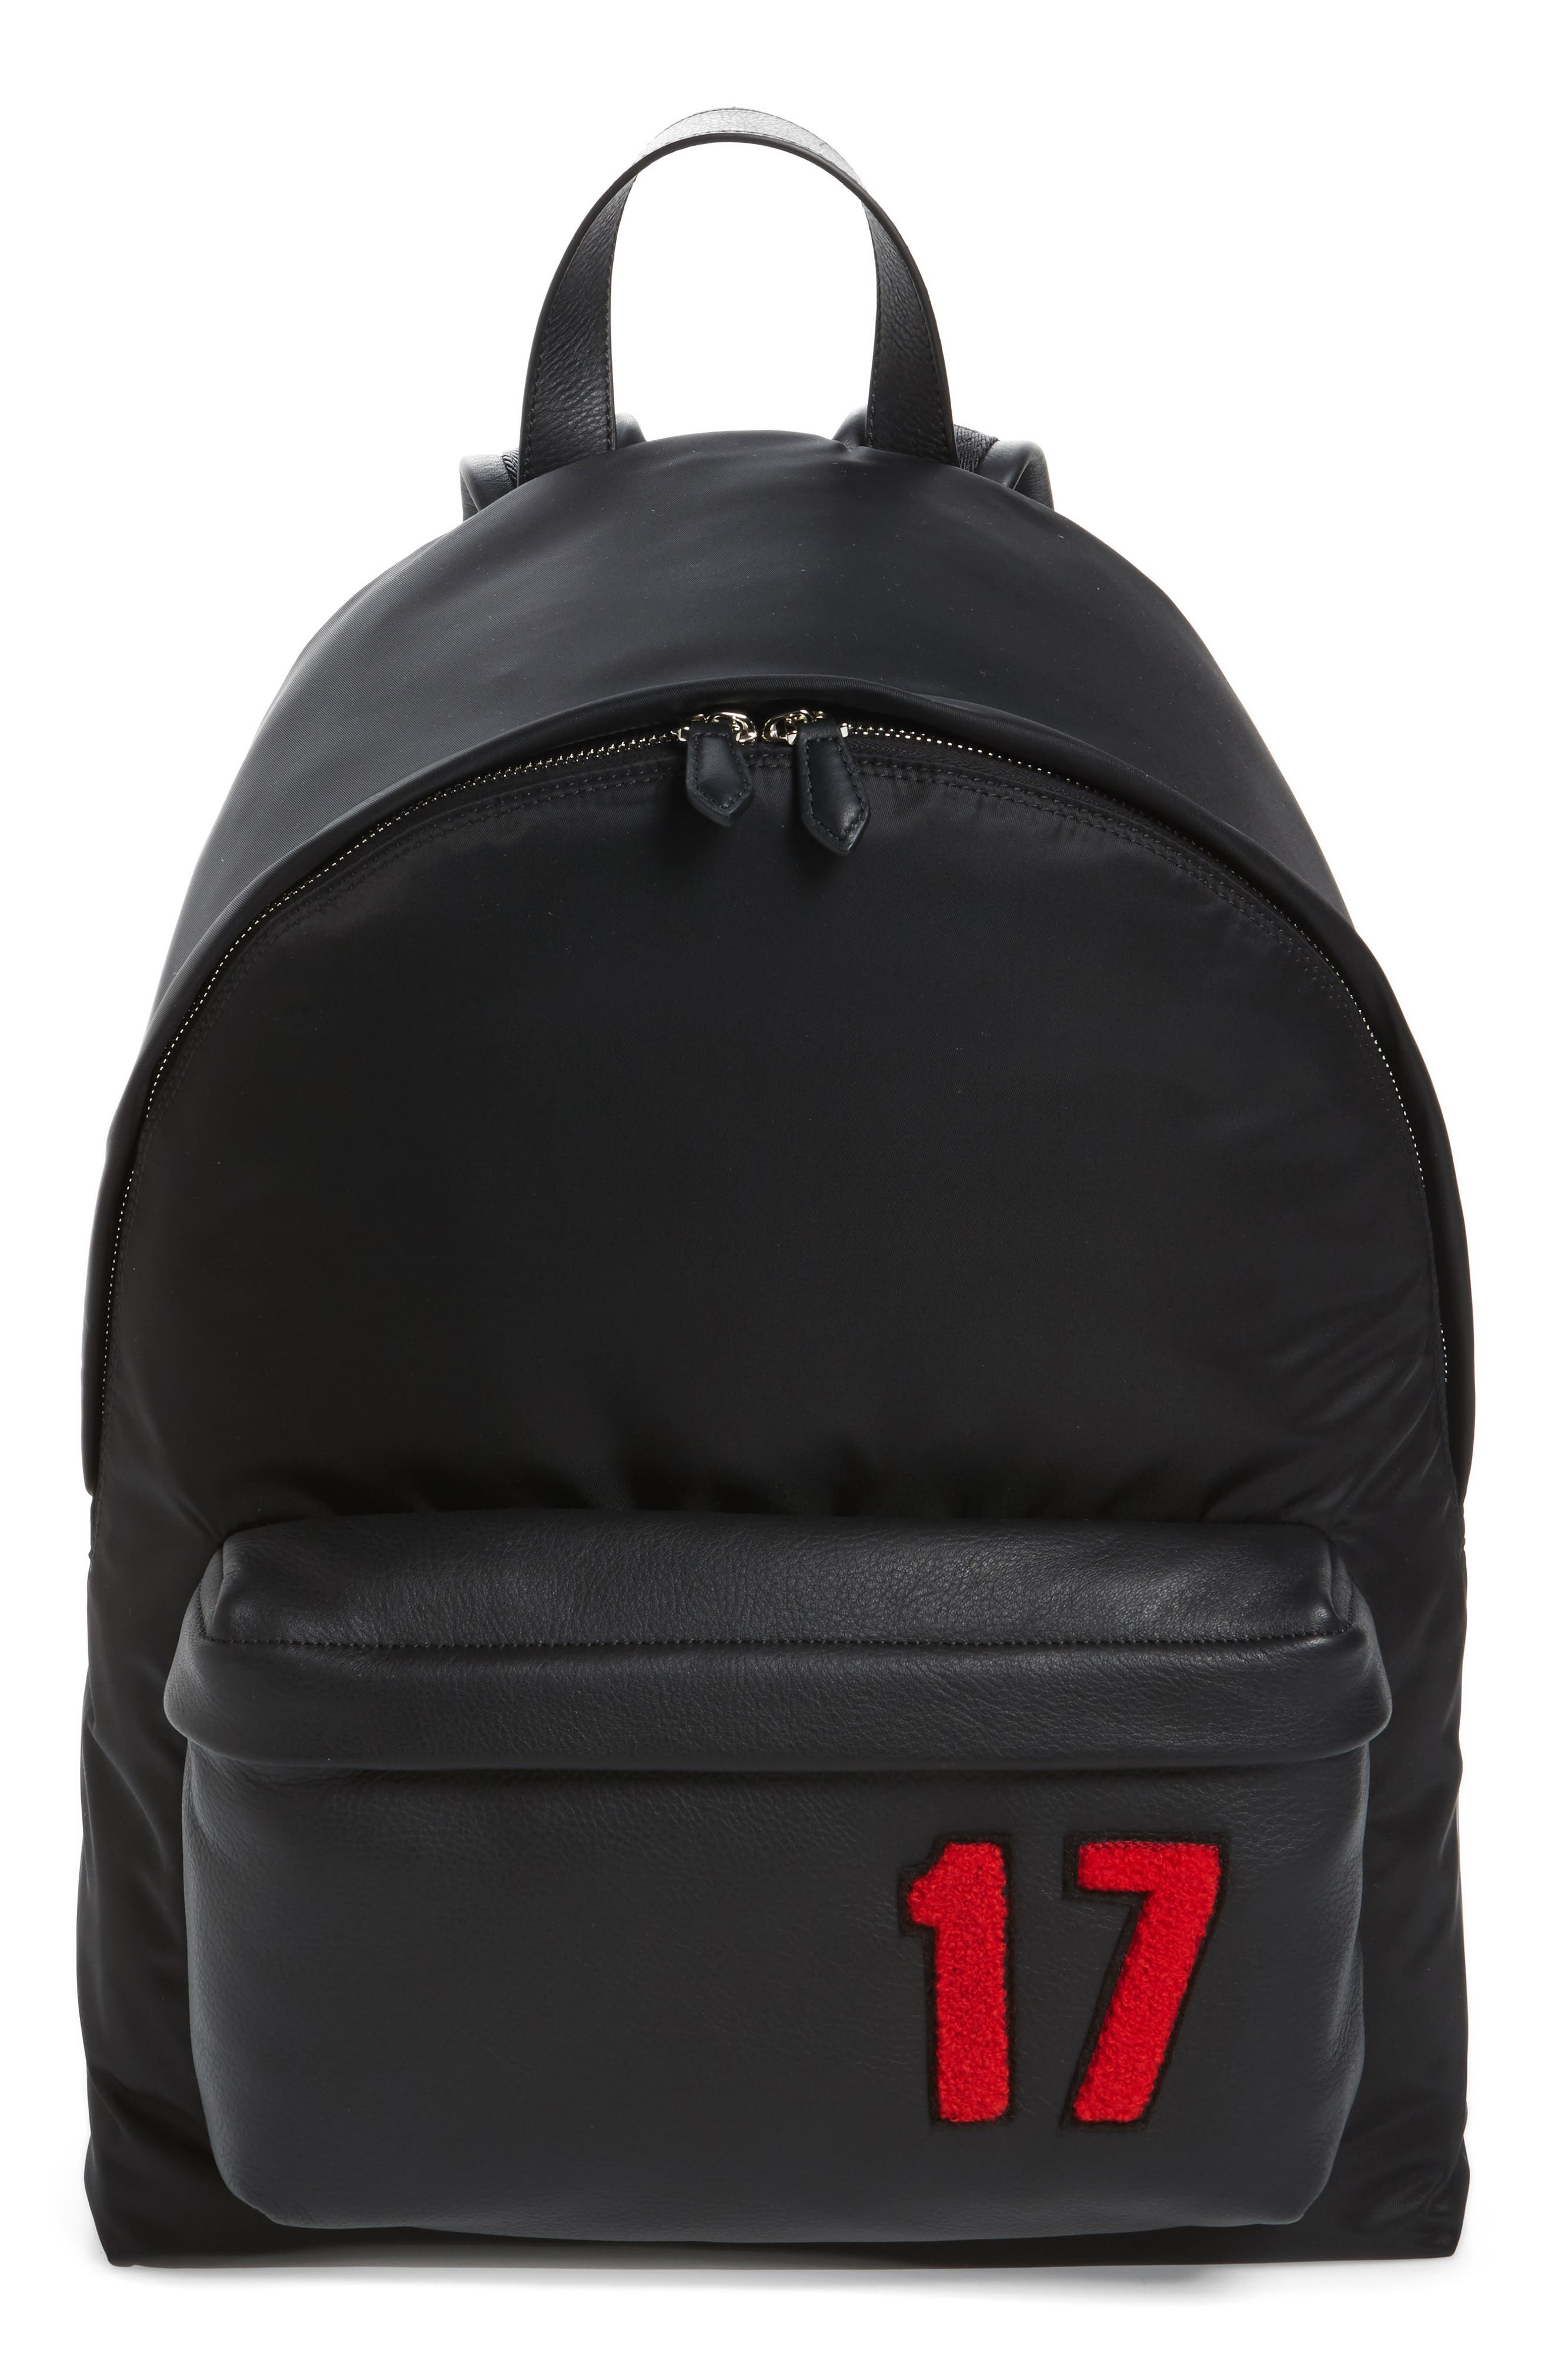 17 Patch Mix Media Backpack,                             Main thumbnail 1, color,                             Black/ Red